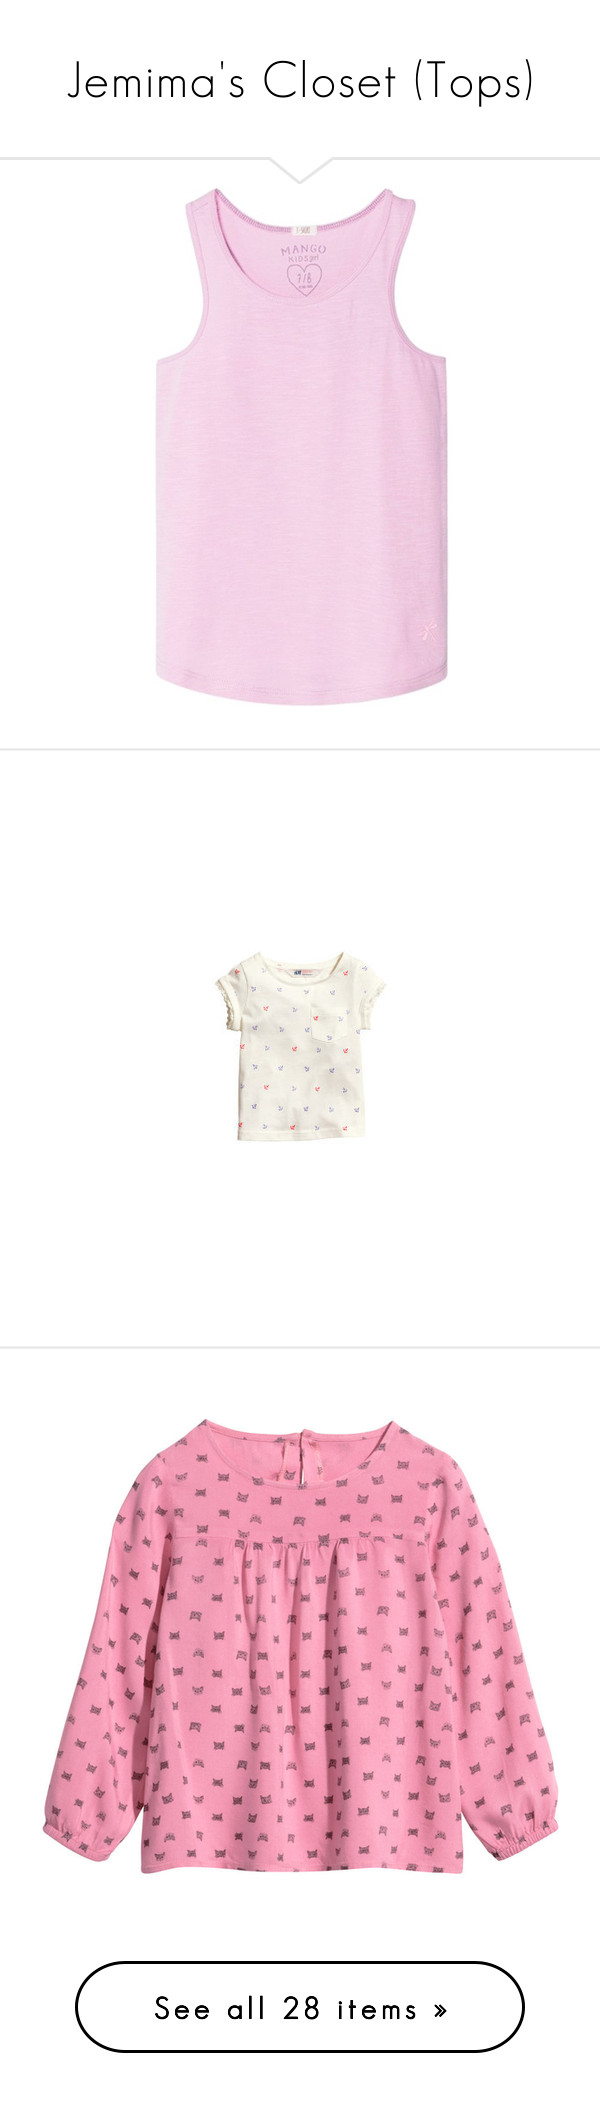 """Jemima's Closet (Tops)"" by littlewhitedaisy ❤ liked on Polyvore featuring tops, kids, girls, daughter, h&m, baby clothes, shirts & tops, baby, shirts and kids clothes"